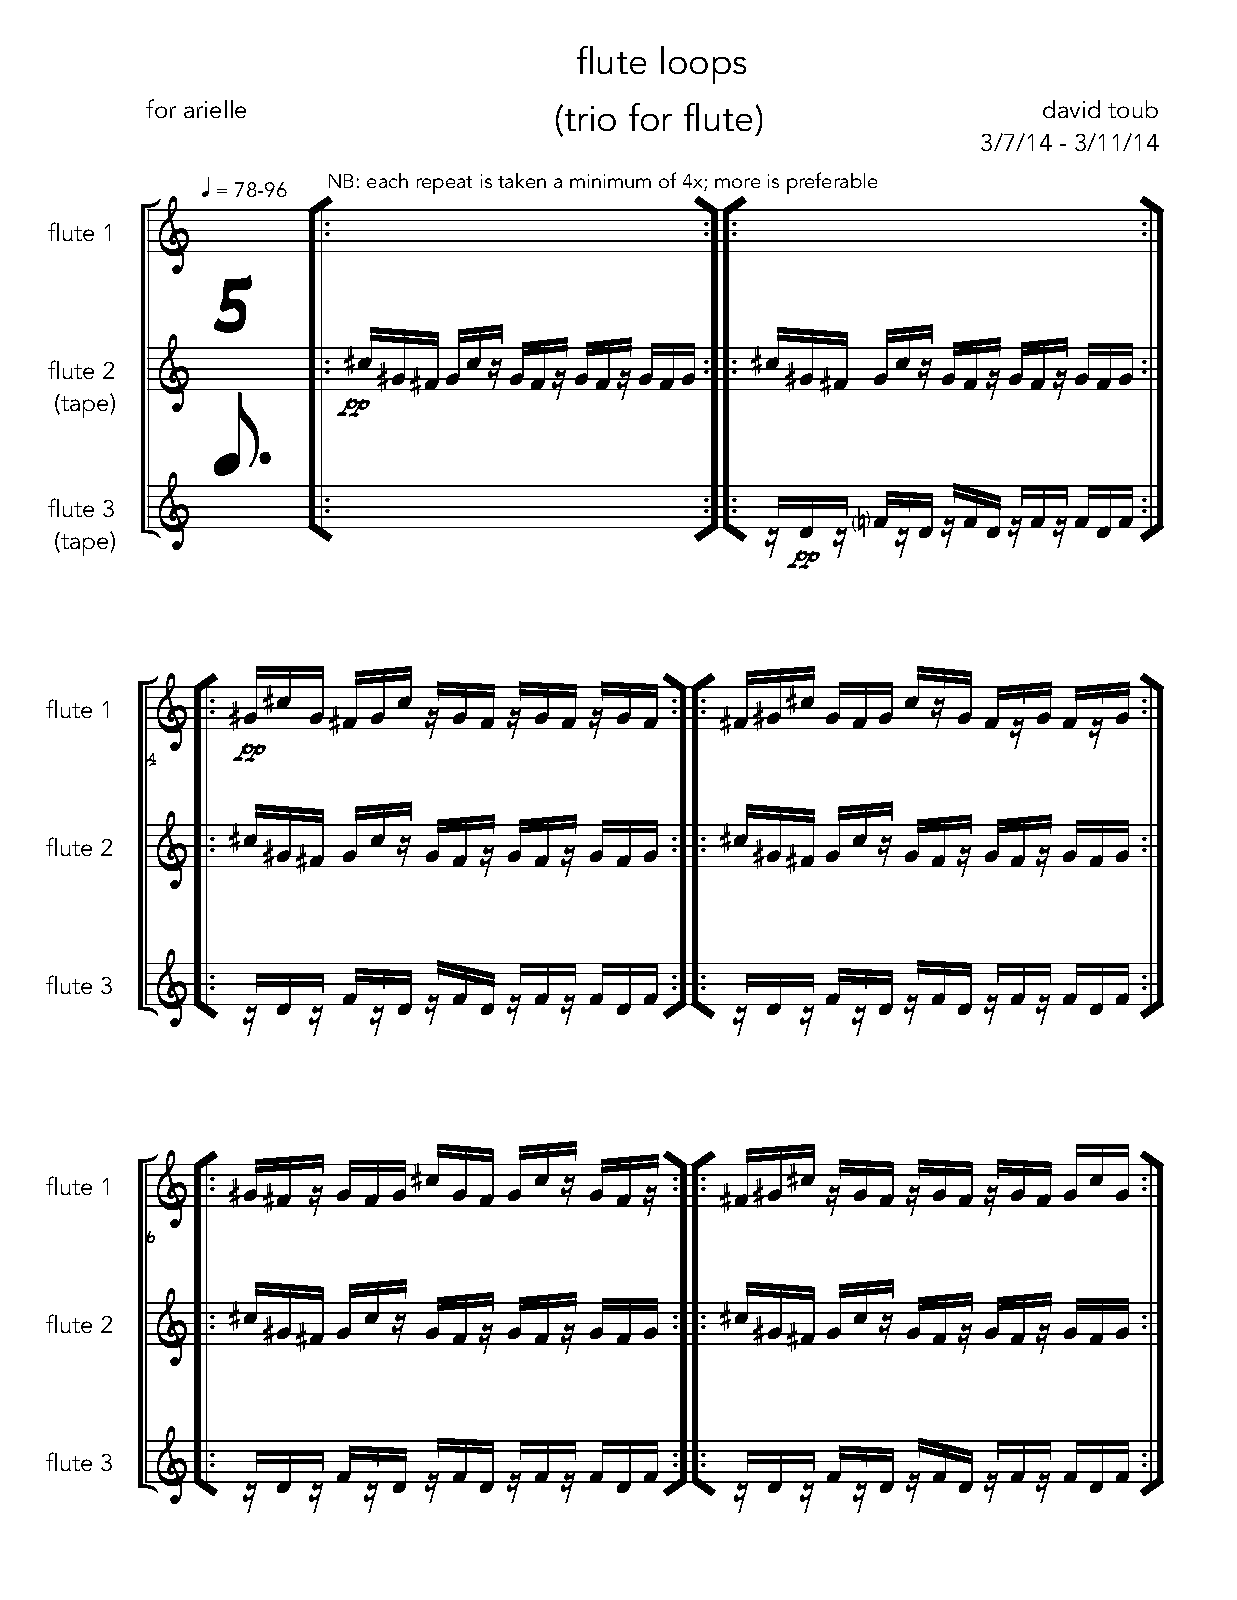 PMLP514942-flute loops (trio for flute).pdf